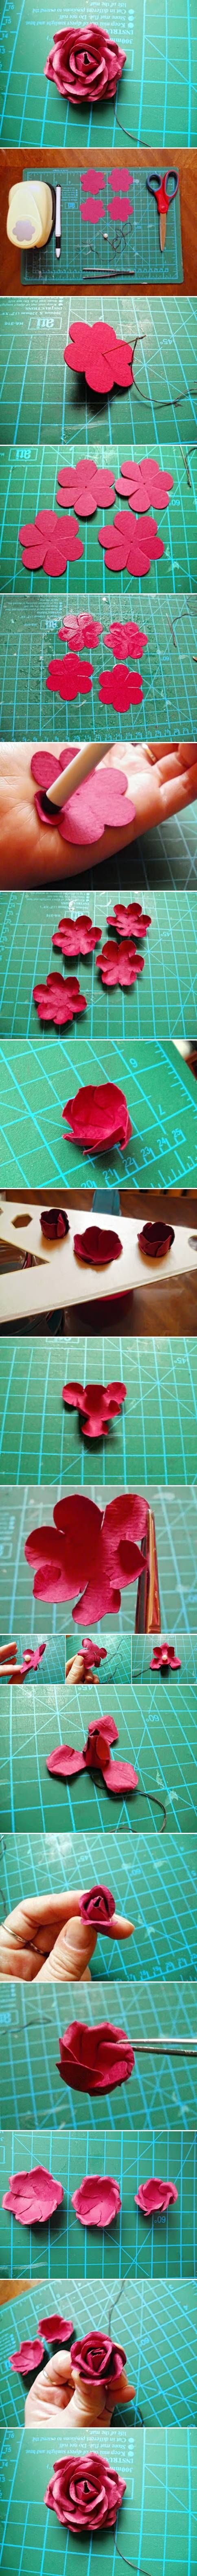 DIY Easy Modular Paper Rose DIY tutorial !!